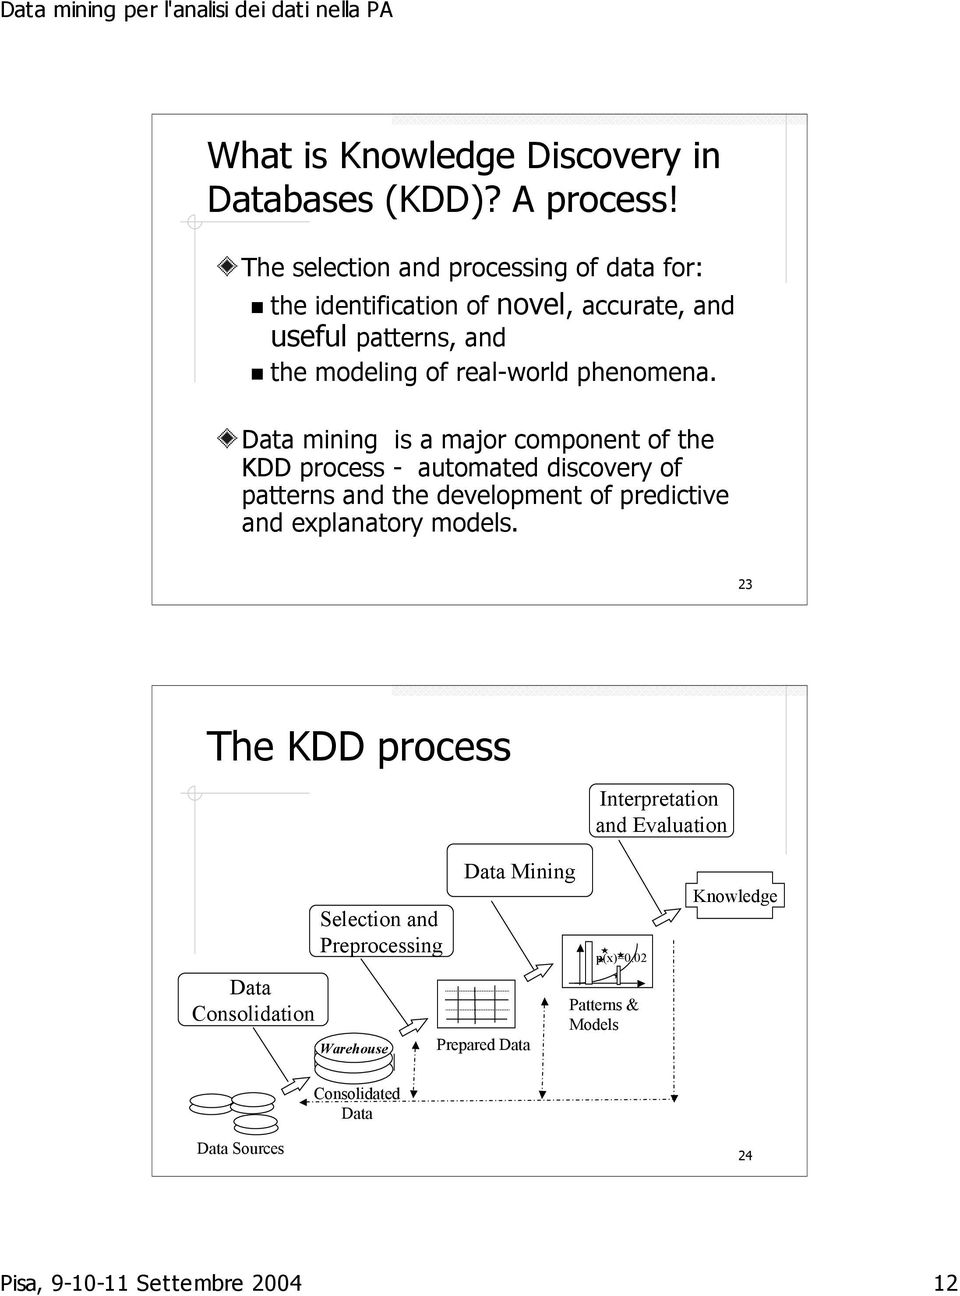 Data mining is a major component of the KDD process - automated discovery of patterns and the development of predictive and explanatory models.